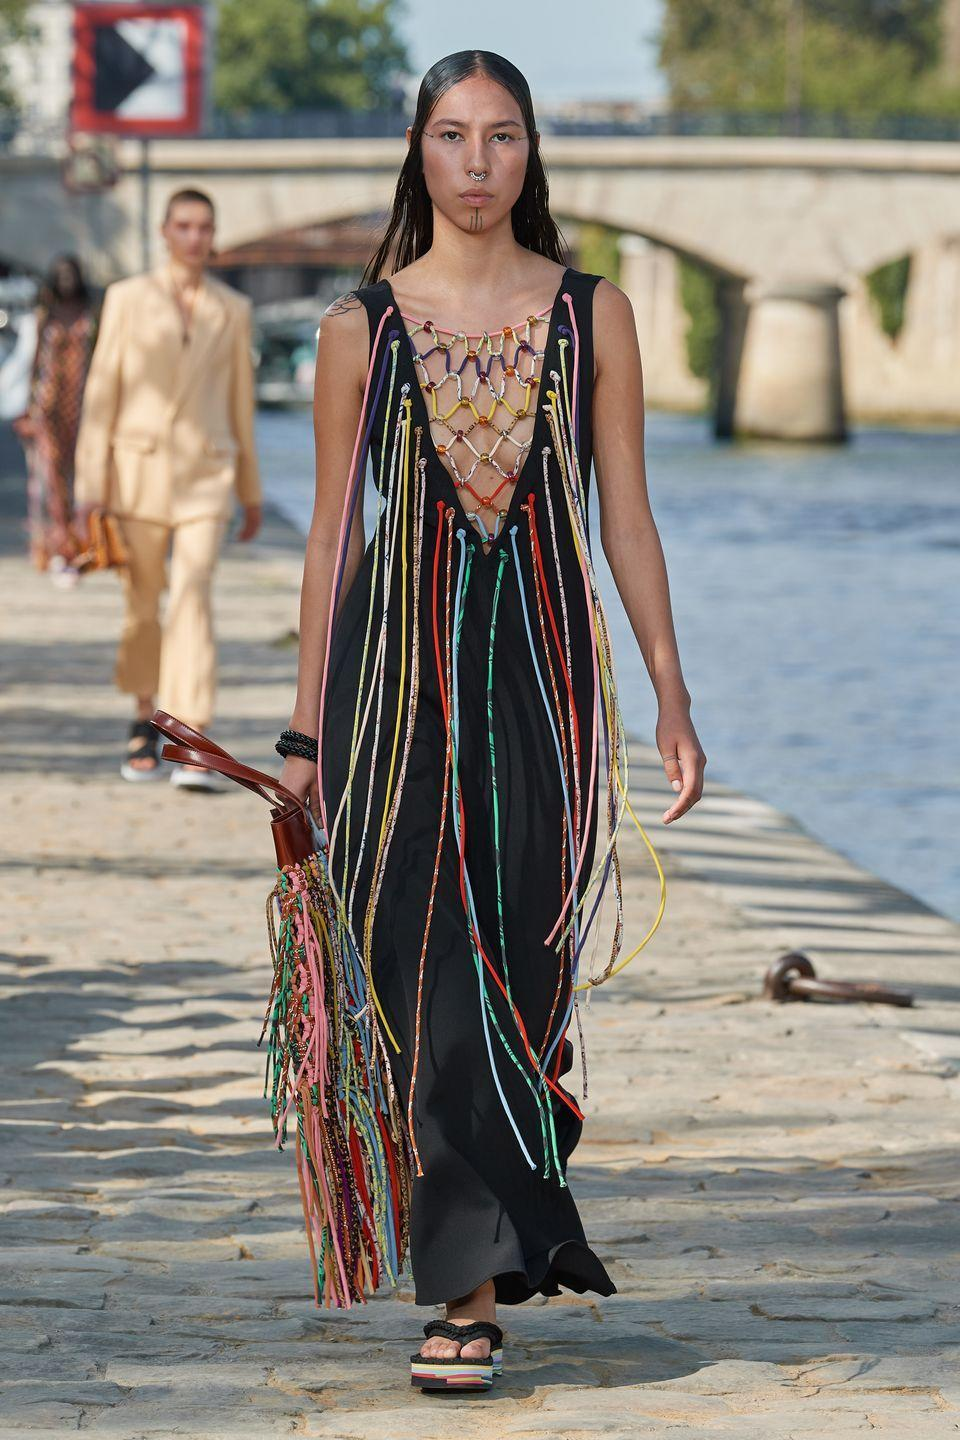 <p>Quannah Chasinghorse walked in Gabriela Hearst, Prabal Gurung, and Jonathan Simkhai at New York Fashion Week. But she really hit her (catwalk) stride in Paris. The 19-year-old Indigenous model is Hän Gwich'in and Oglala Lakota, and made an appearance both at Chloé and Chanel. Chasinghorse is also a fourth-generation land protector for the Arctic National Wildlife Refuge, part of the Alaska Wilderness League. </p>